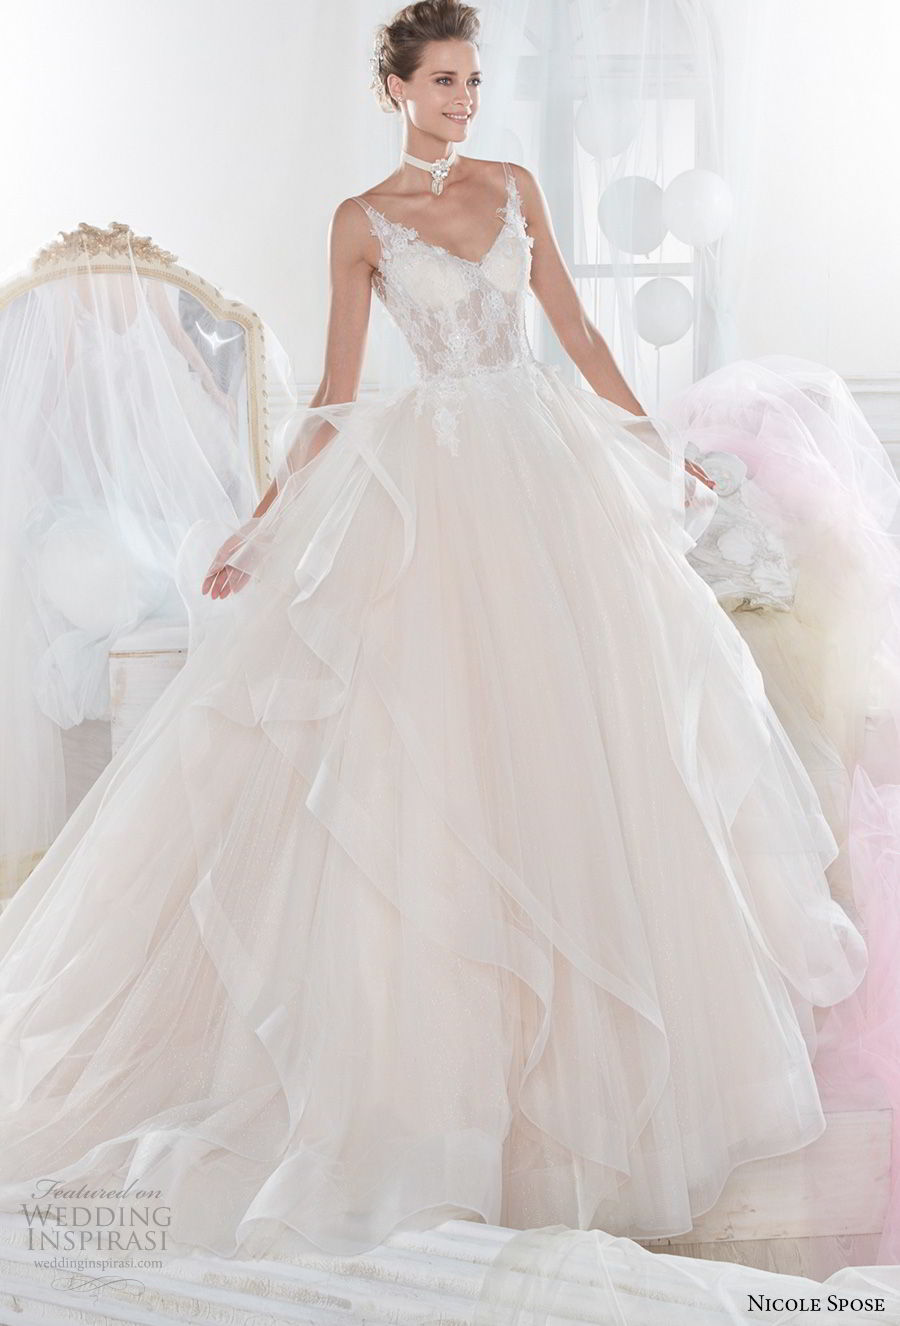 nicole spose 2018 bridal sleeveless thin strap v neck heavily embellished bodice bustier romantic blush ball gown wedding dress open back chapel train (17) mv